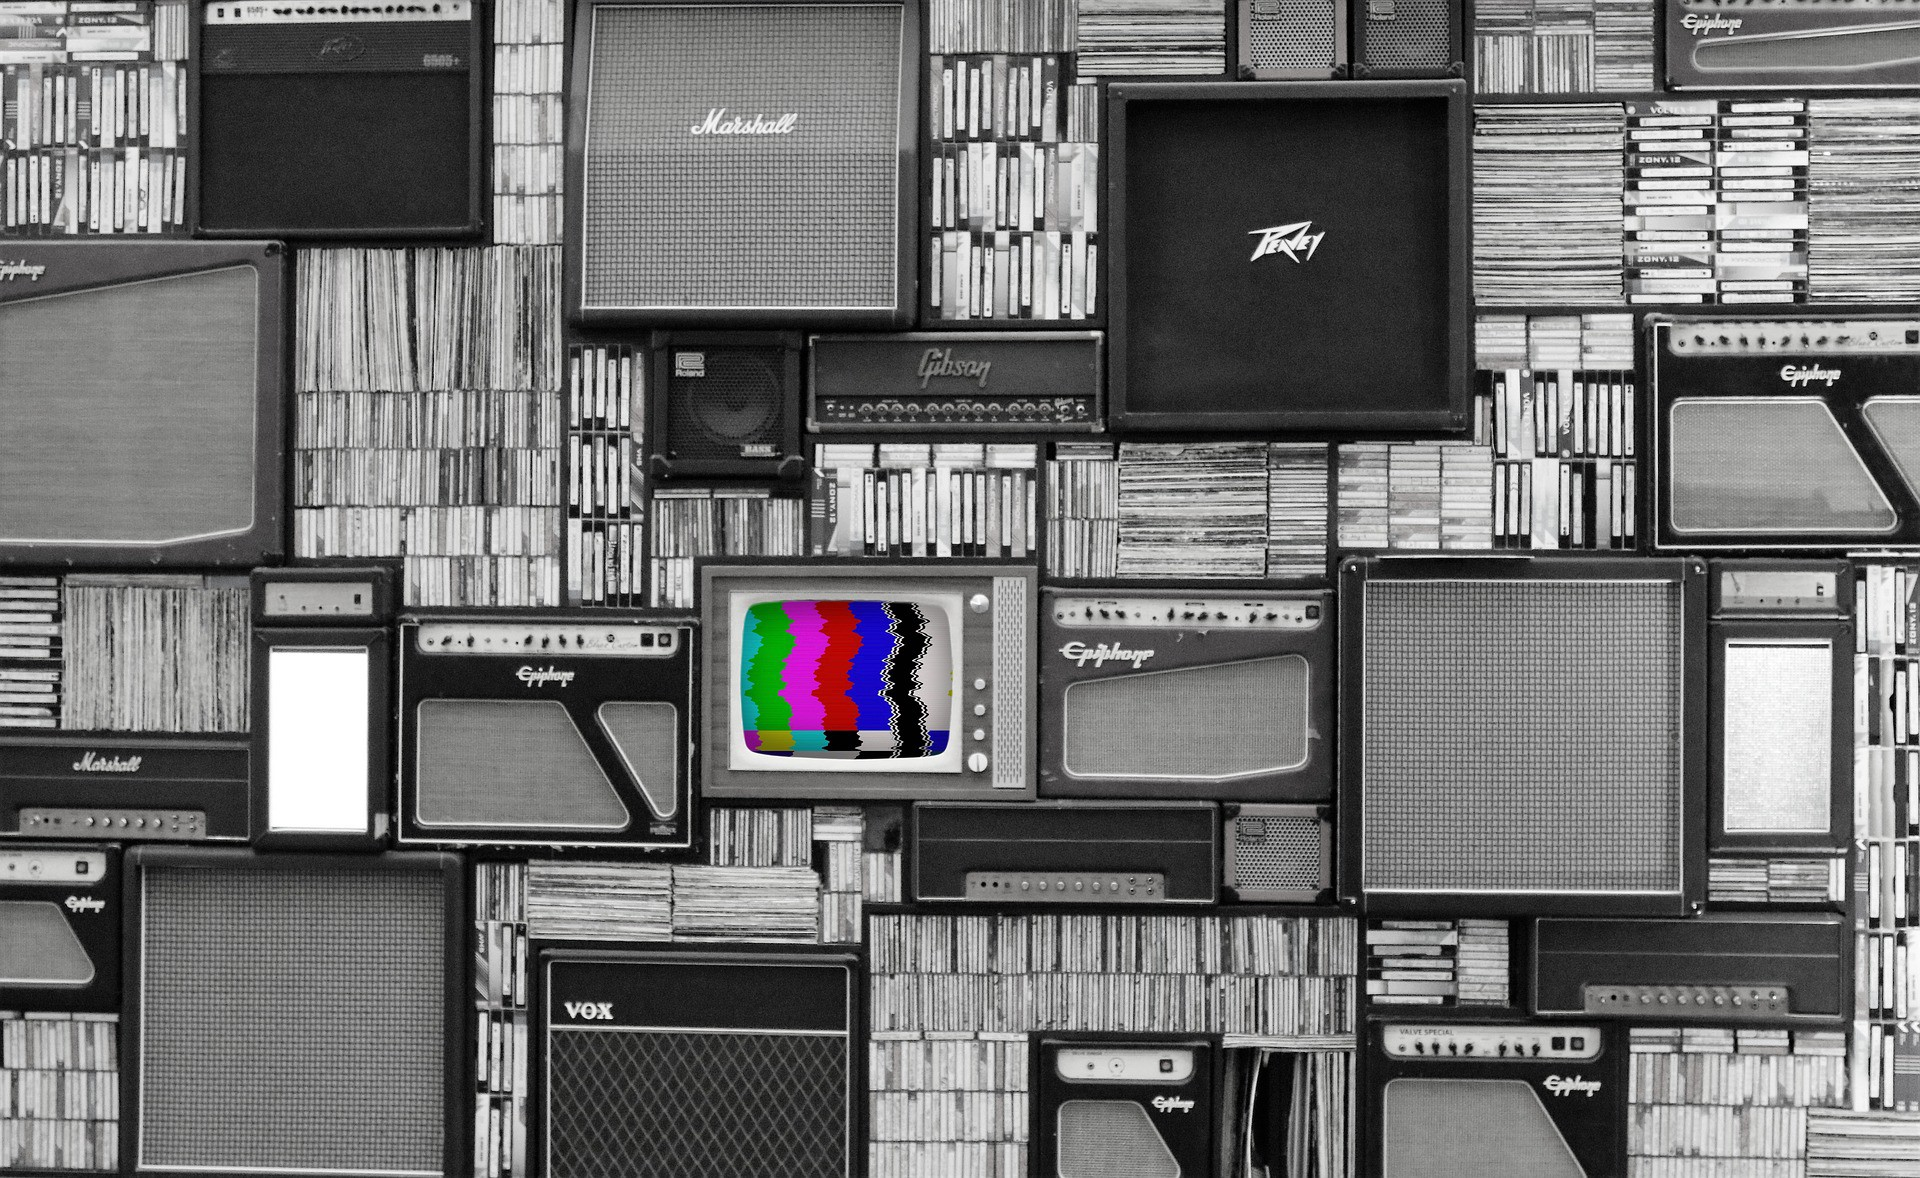 /from-struggle-to-embrace-tvs-technological-conundrum-bdb70cabcf9 feature image